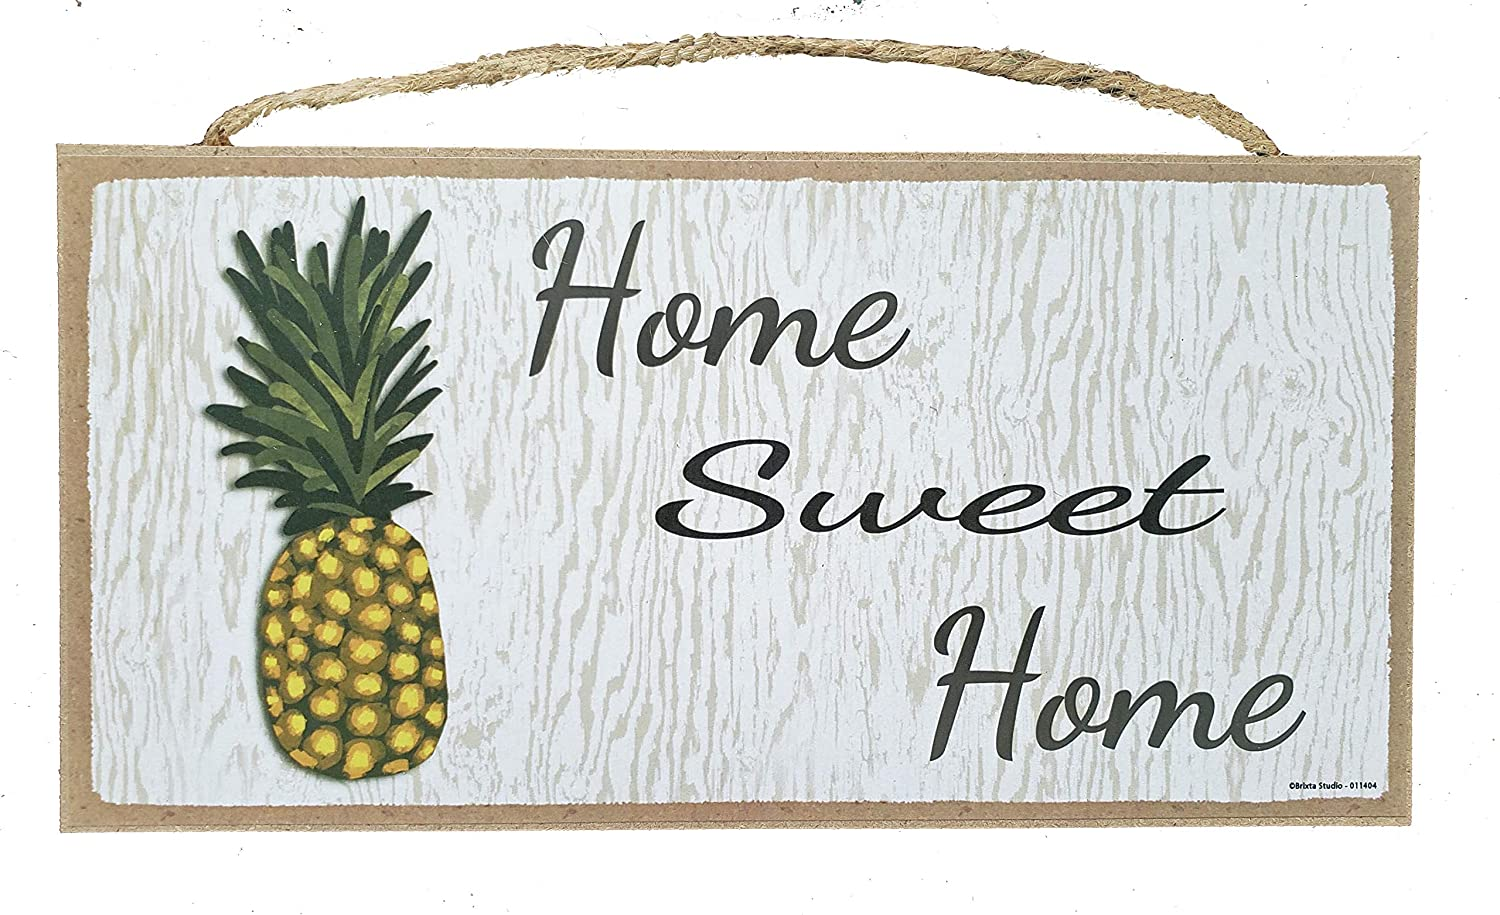 Home Sweet Home Pineapple Wall Decor Plaque - Small Hanging Wood Sign - 10 x 5 Inches